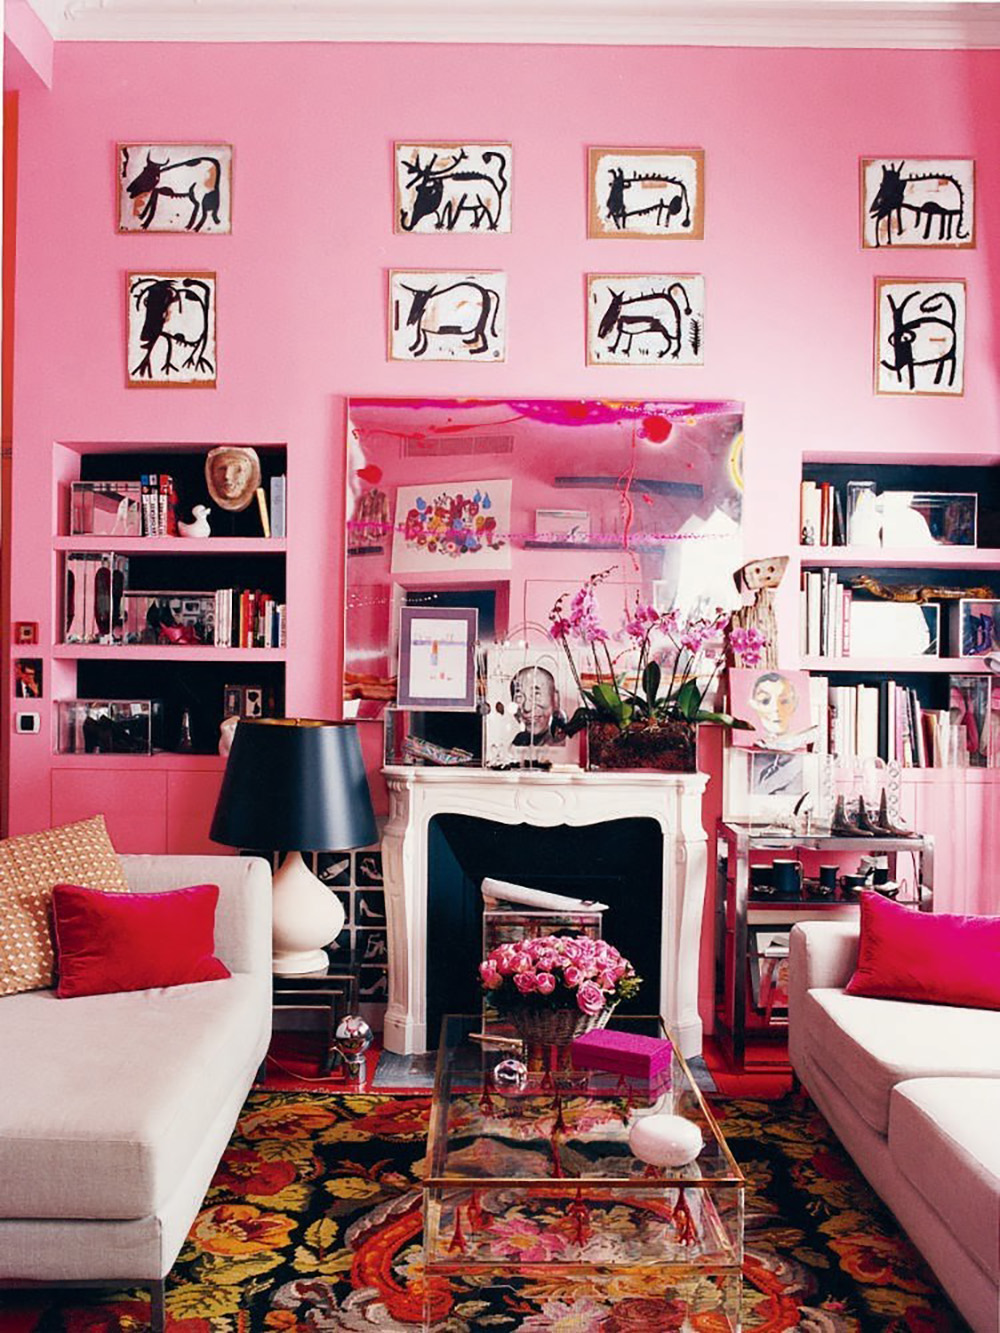 So Fresh & So Chic // Pink and Red Interiors // Bubblegum pink walls in living room with black, beige, and red accents